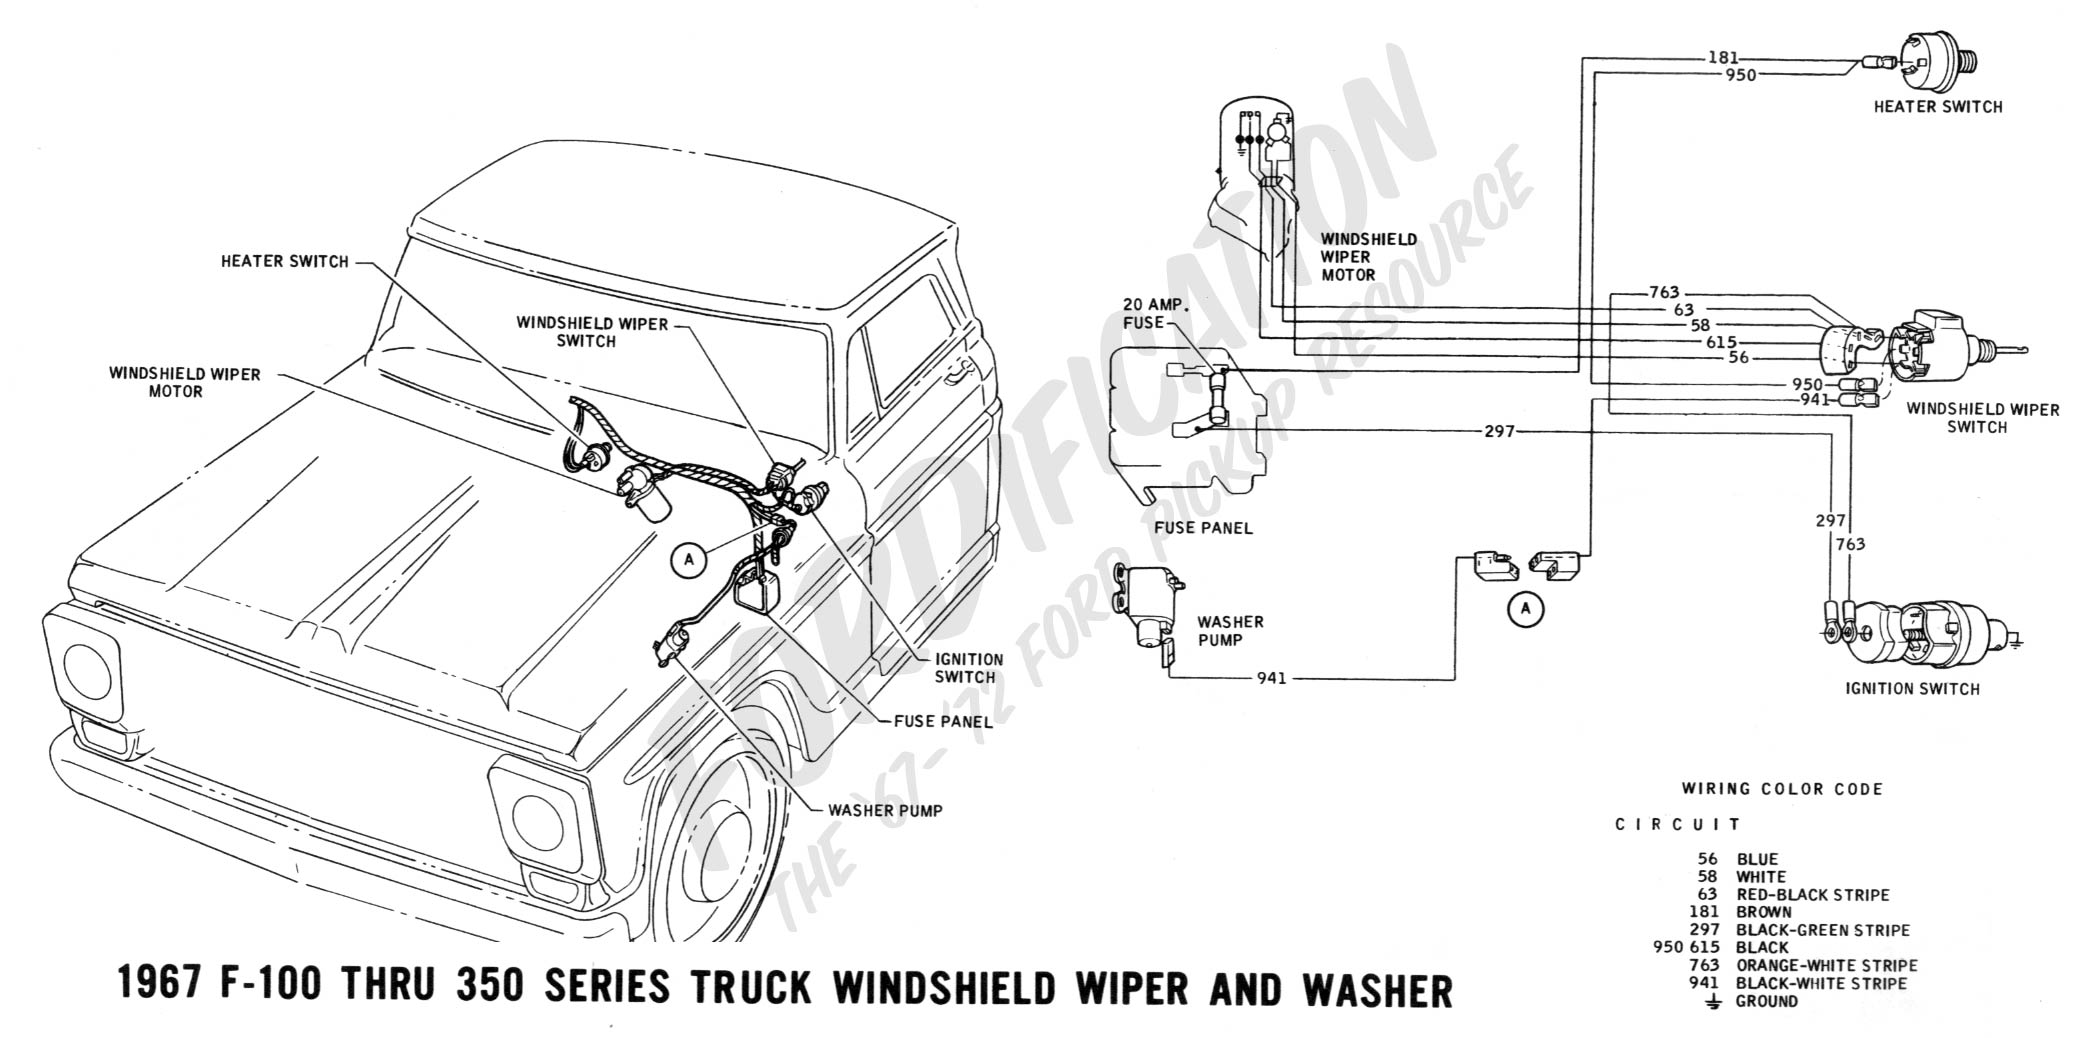 Wiring Diagram For 1995 Ford F350 Wiper Motor. Wiring Diagram For 1995 Ford F350 Wiper Motor. Dodge. 2002 Dodge Ram 1500 Instrument Cluster Wiring Diagram At Justdesktopwallpapers.com